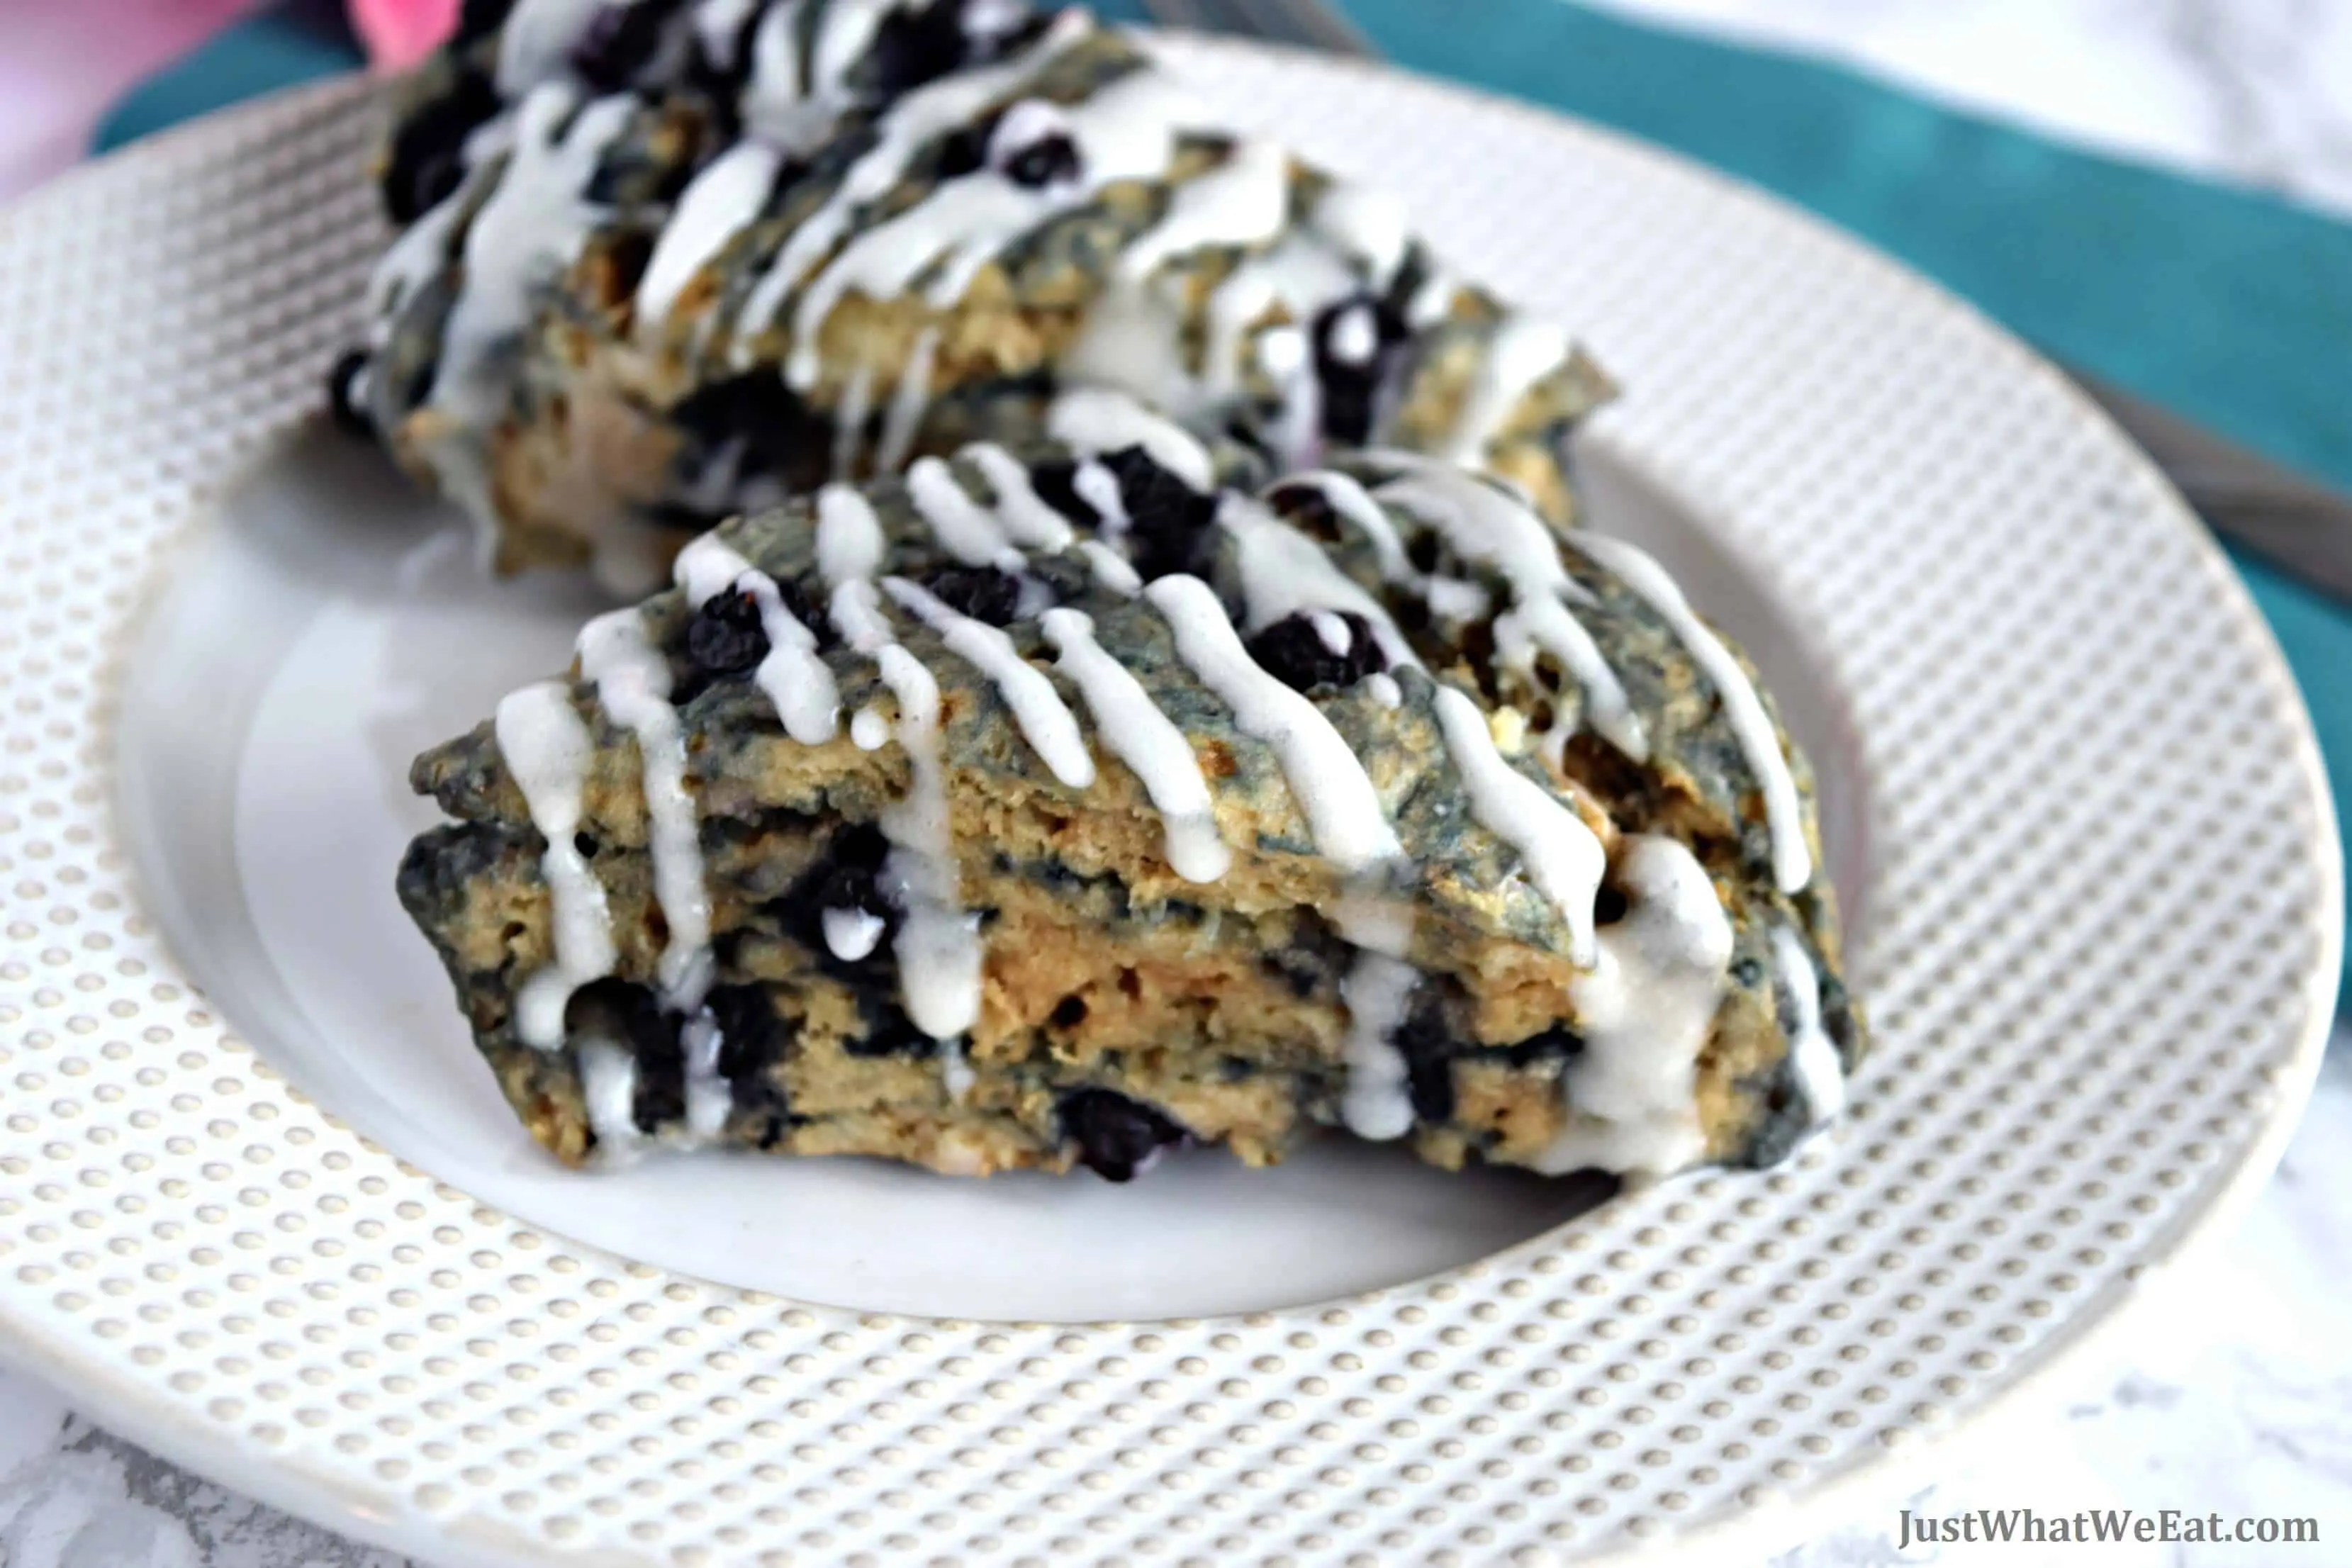 Blueberry Scones - Gluten Free, Vegan, & Refined Sugar Free